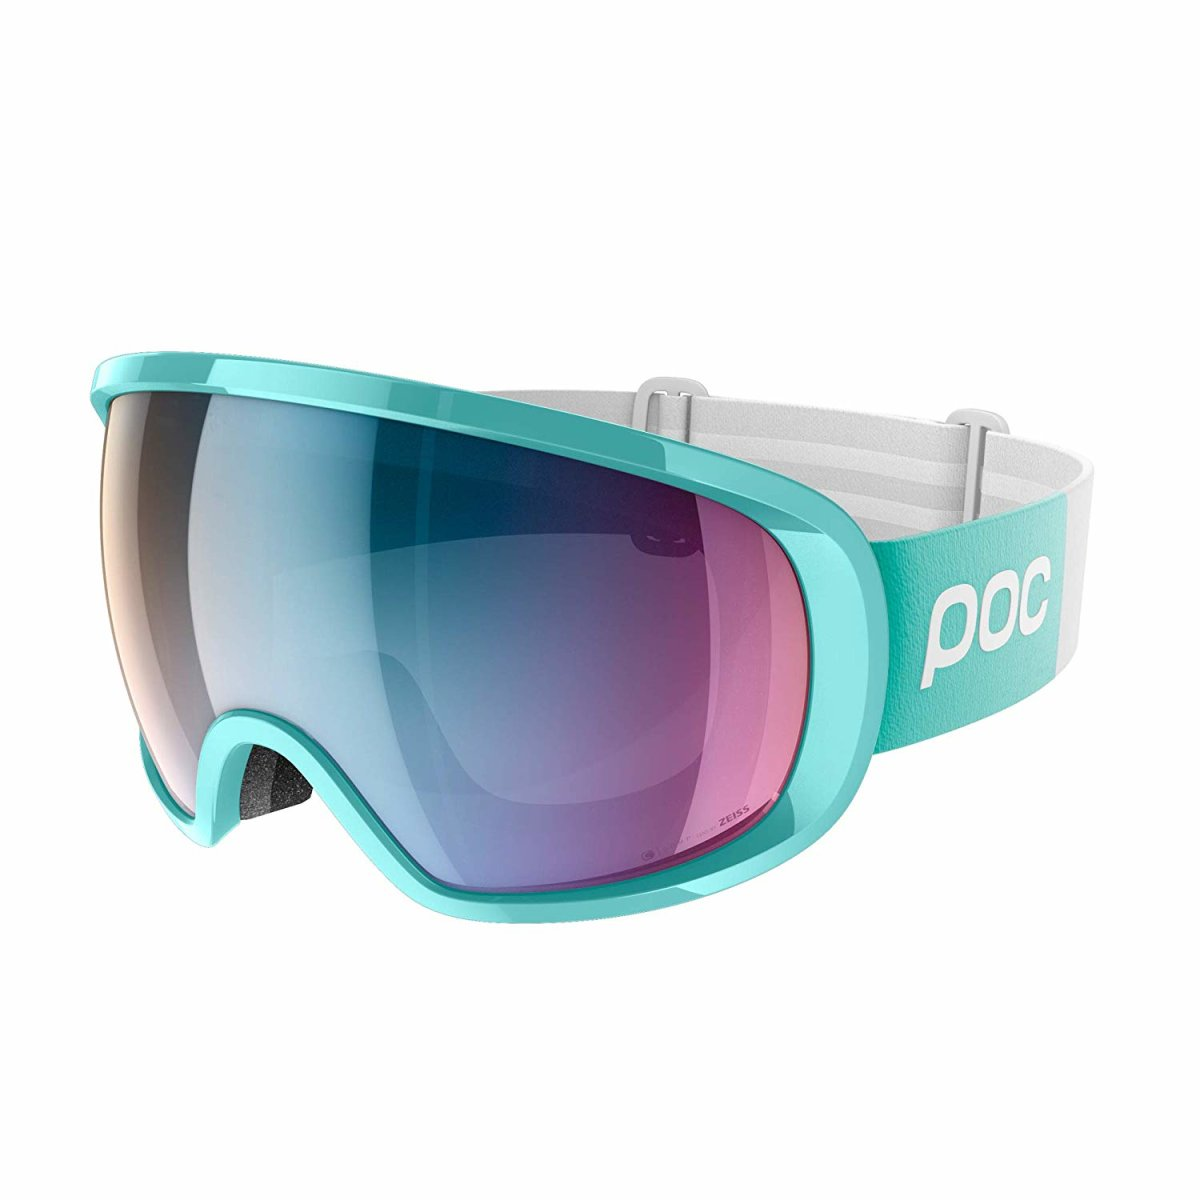 Маска горнолыжная POC Fovea Clarity Comp (Tin Blue/Spektris Pink) PC 404408221ONE1